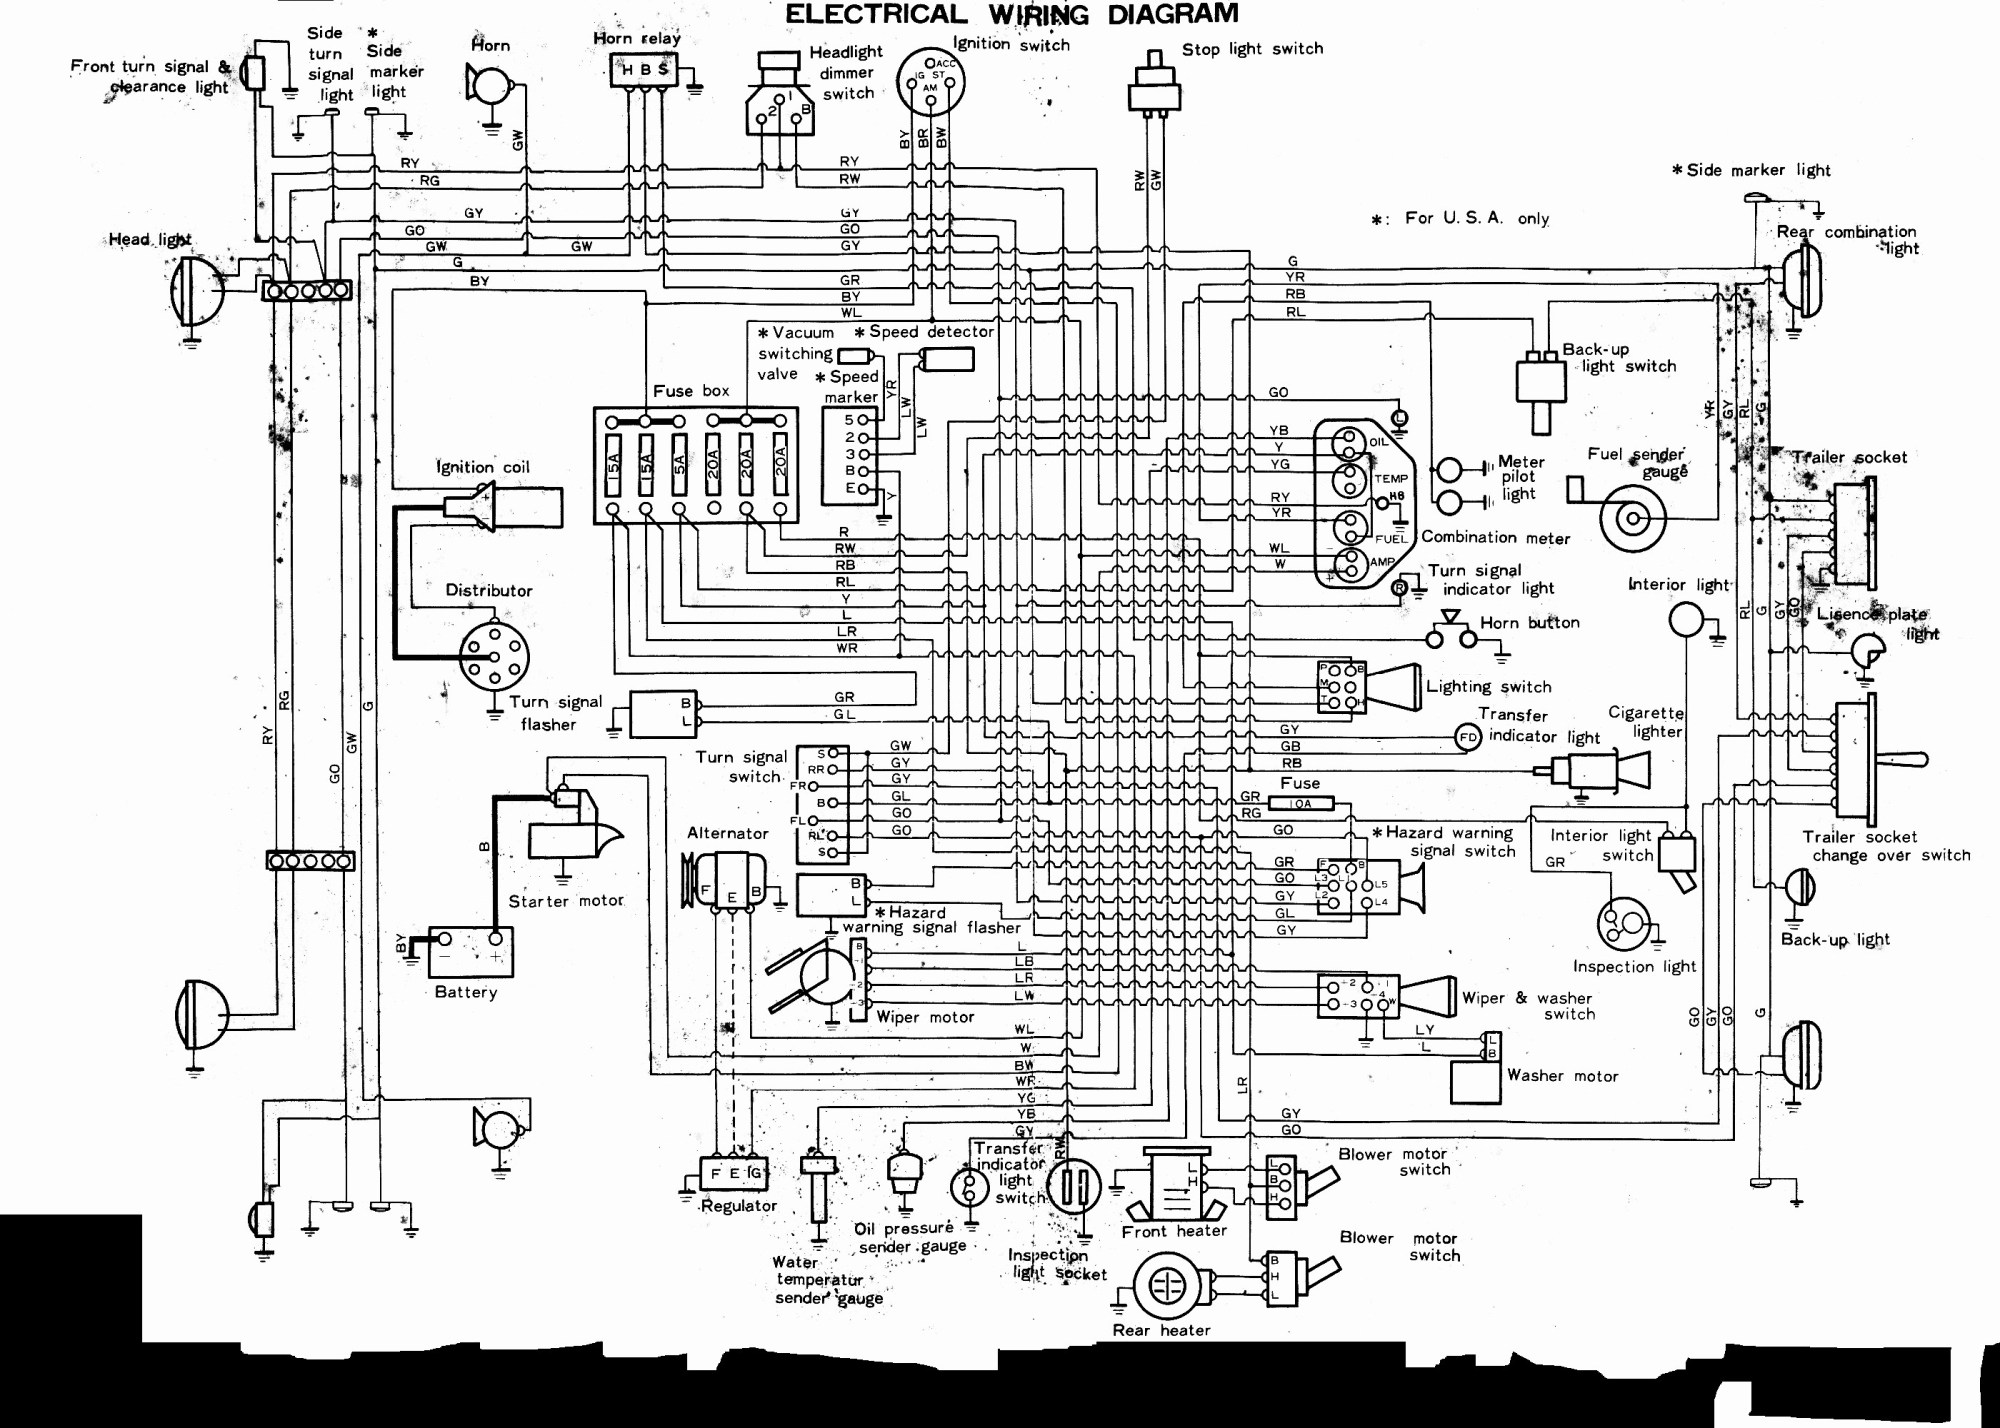 hight resolution of 04 dodge stratus 2 7 engine diagram wiring diagram 2002 dodge intrepid 2 7 engine diagram